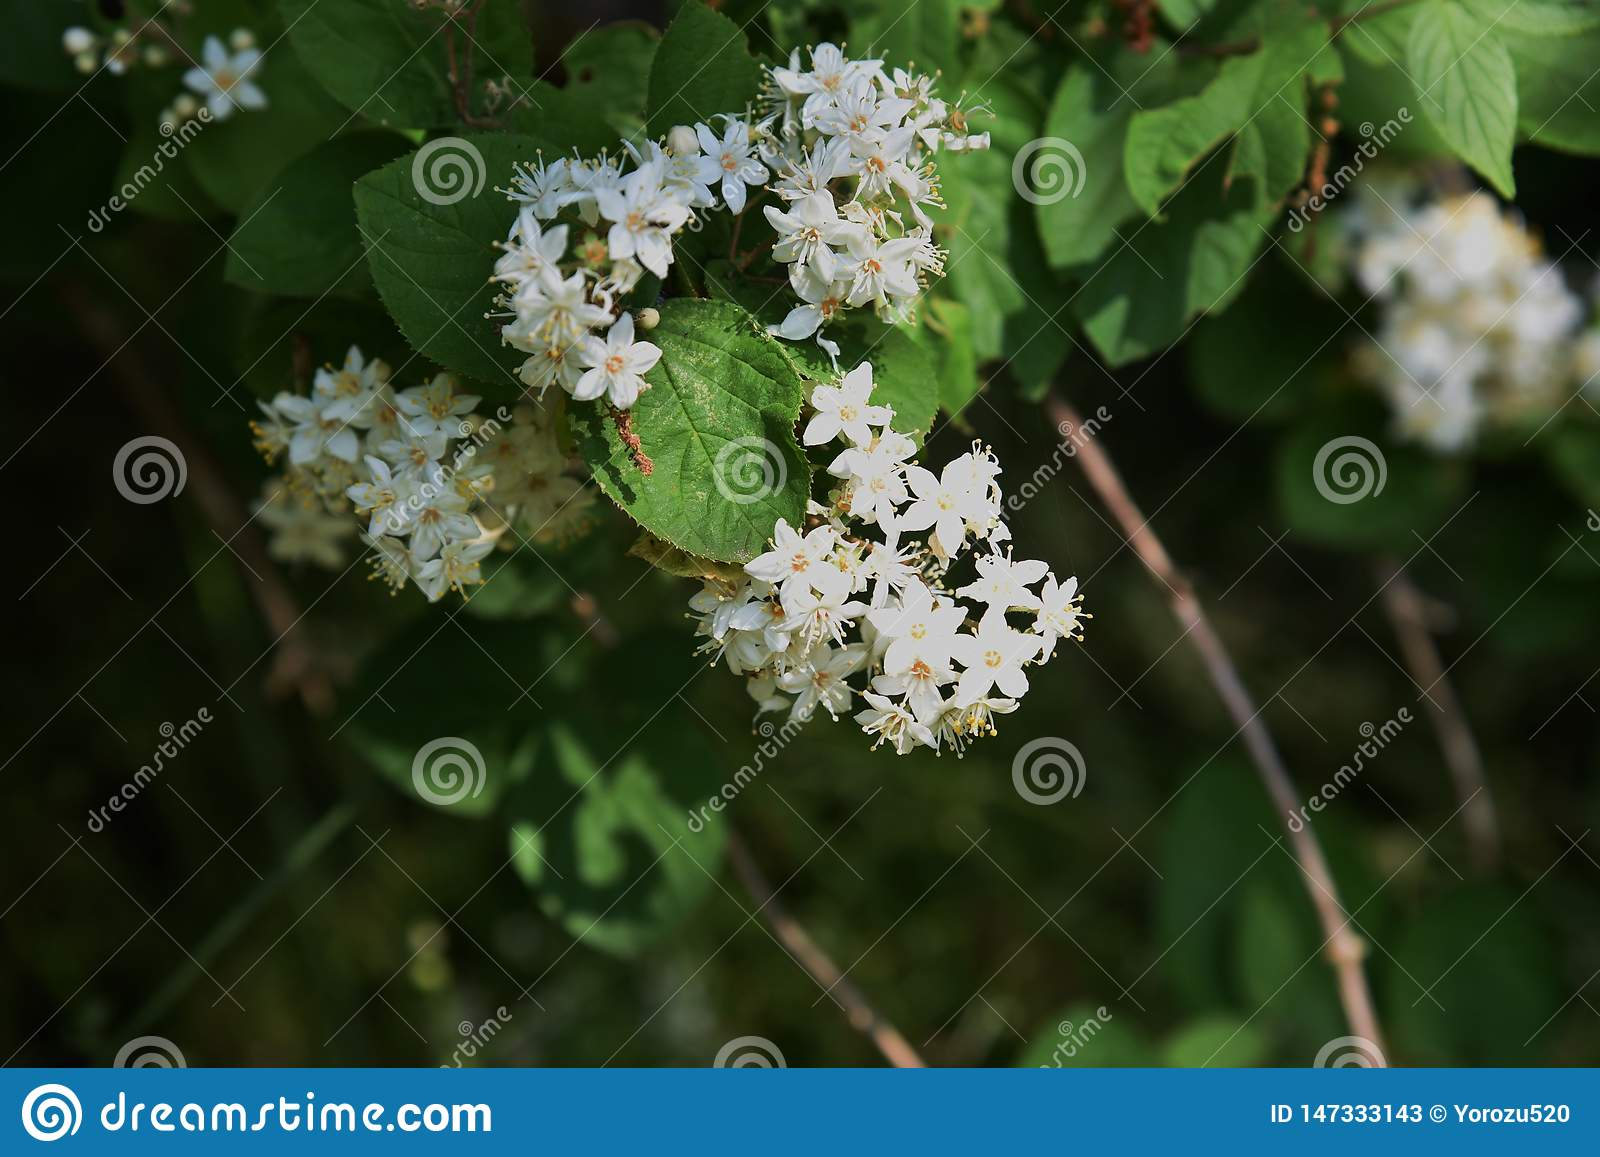 Fuzzy deutzia flowers